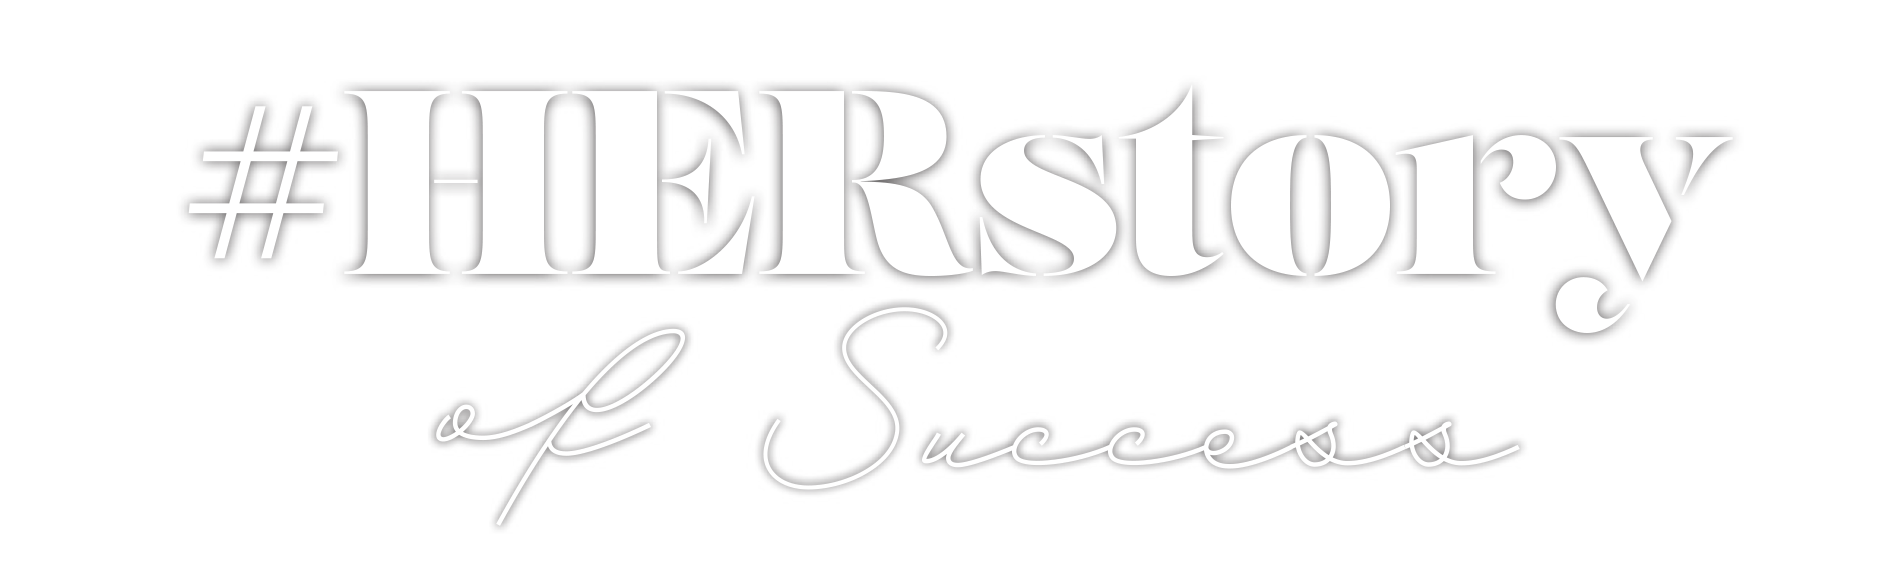 HERstory-of-Success-header-text